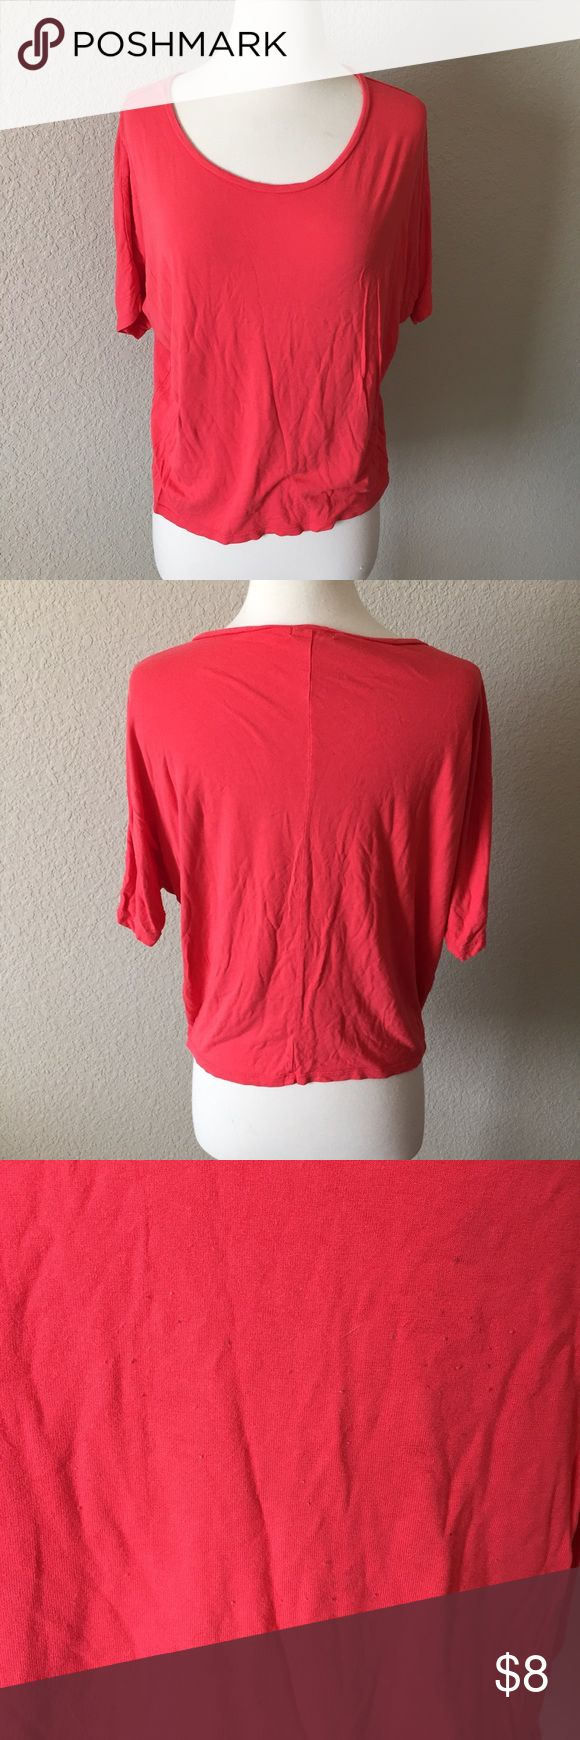 Red Batwing Top (77) Bright red top with short batwing sleeves. Tag size large but best fits a small. Piling on the front. Old Navy Tops Tees - Short Sleeve